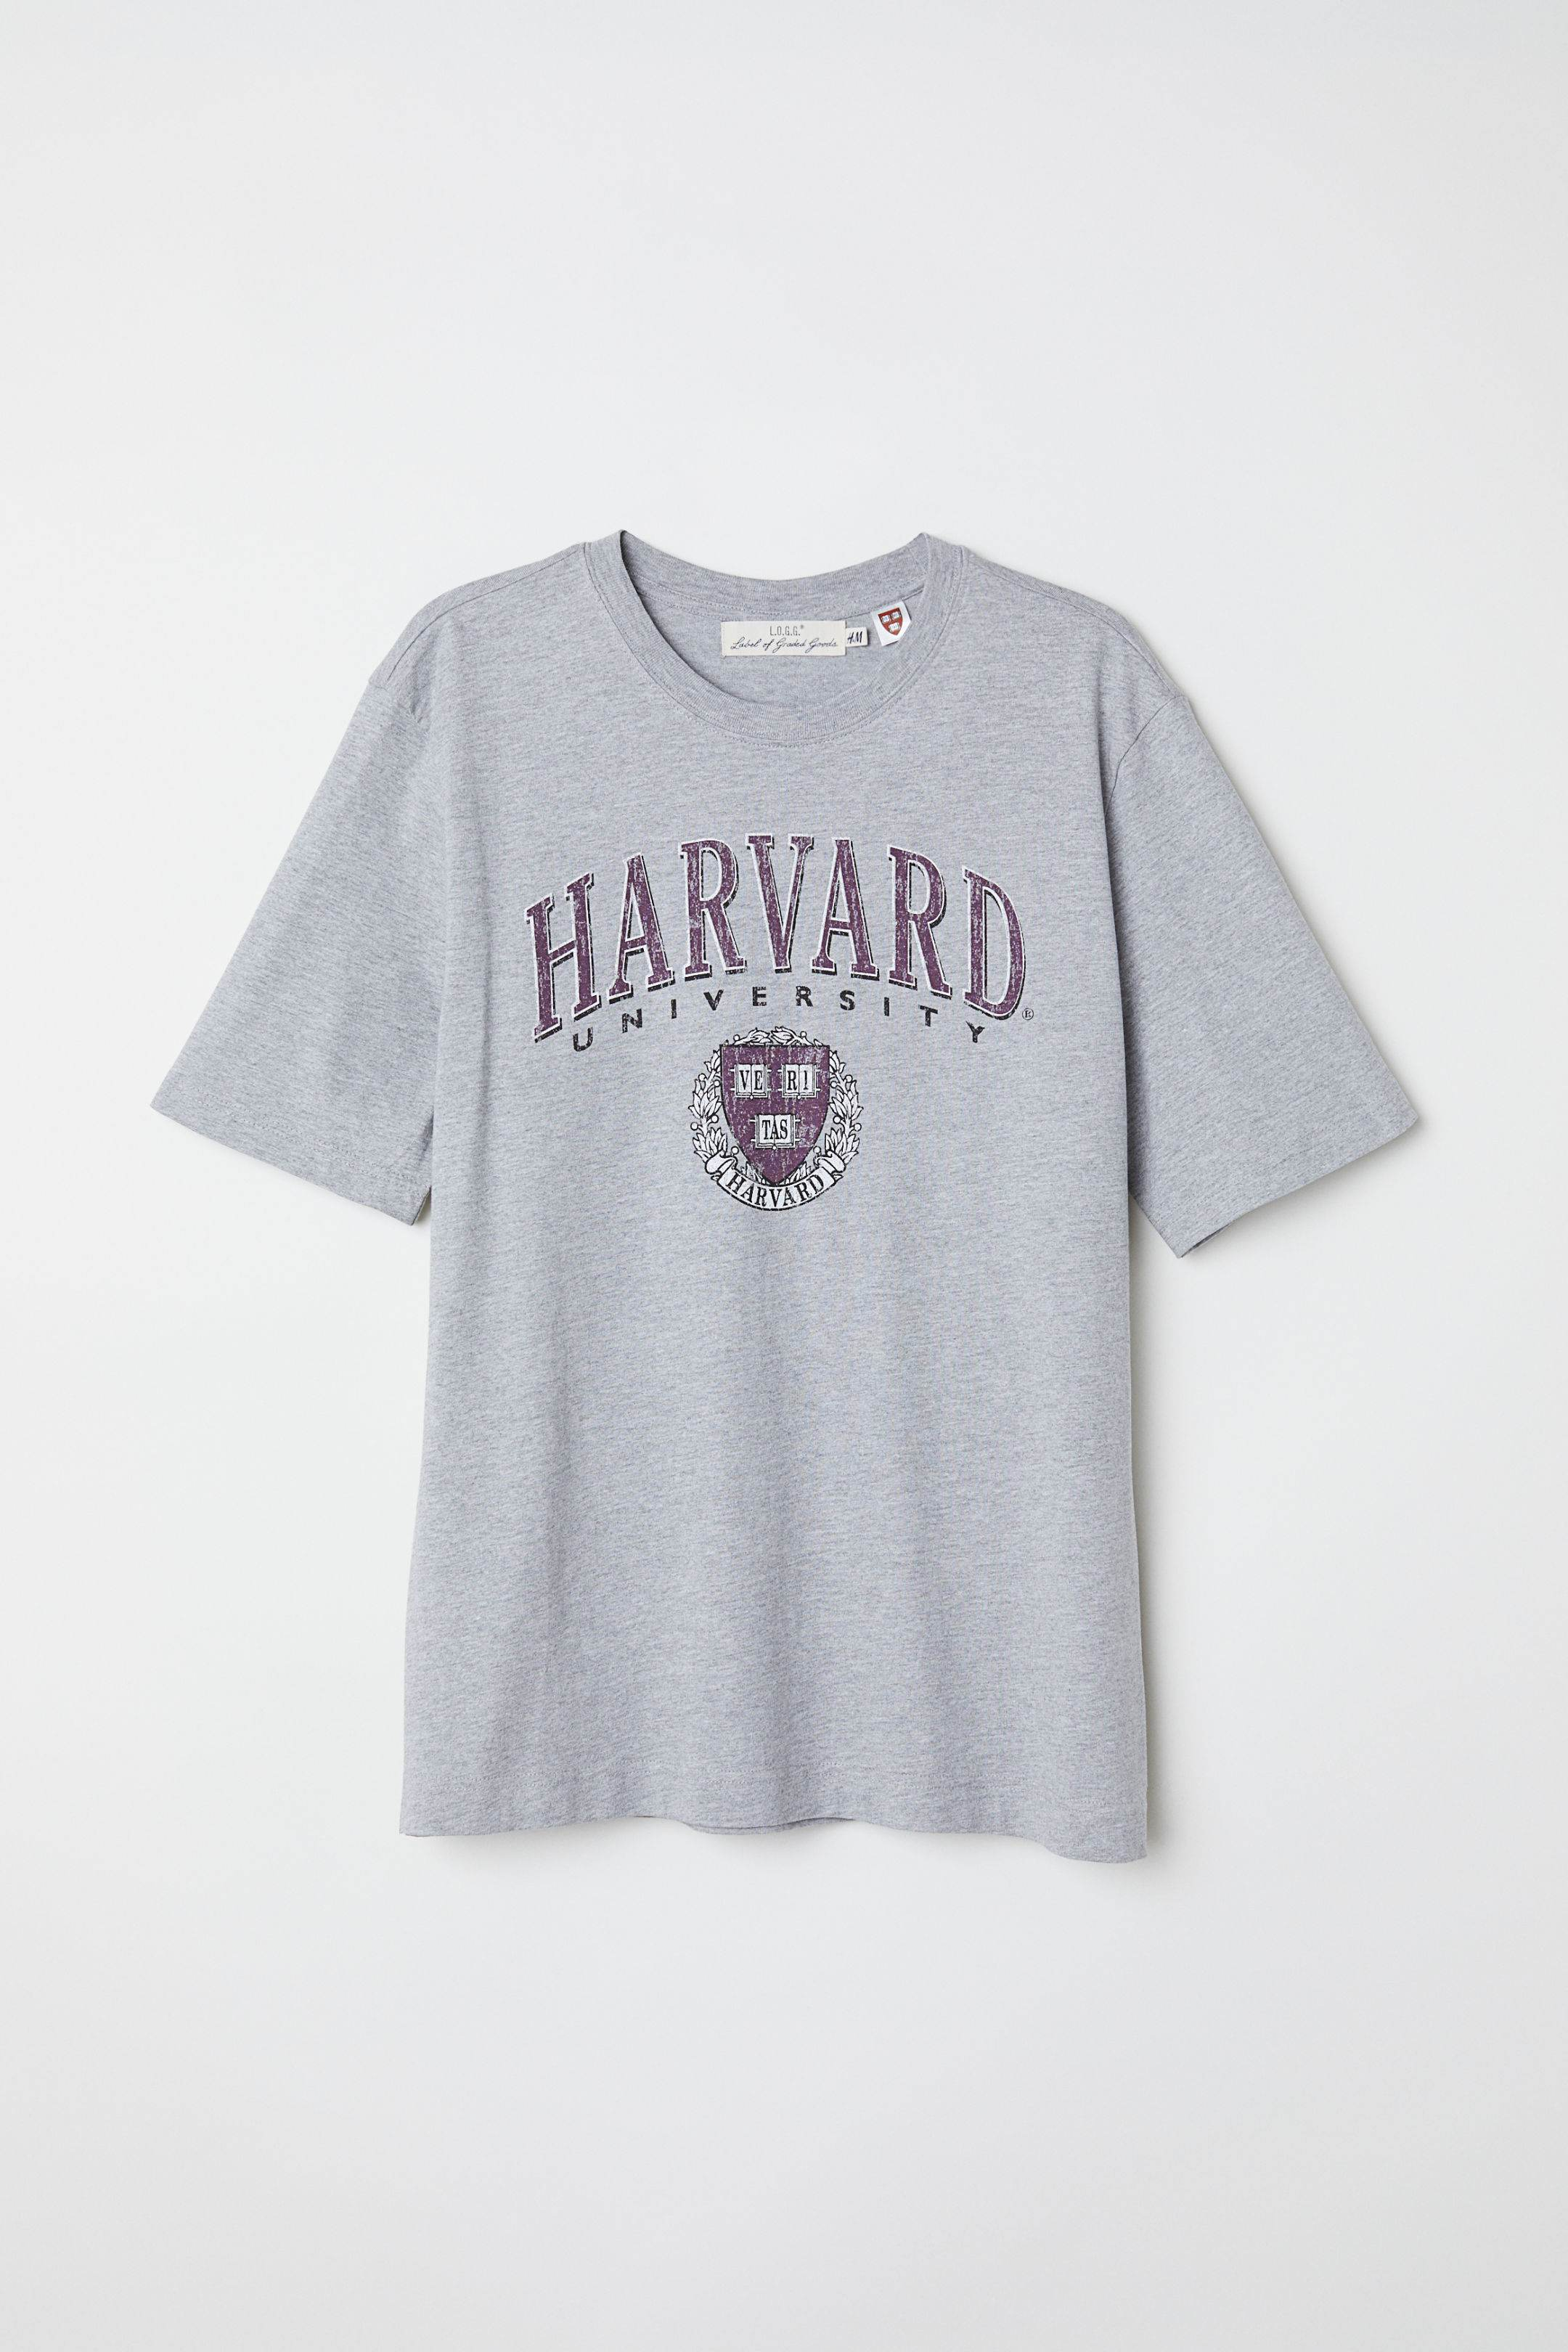 t-shirt trends 2018, harvard, H&M